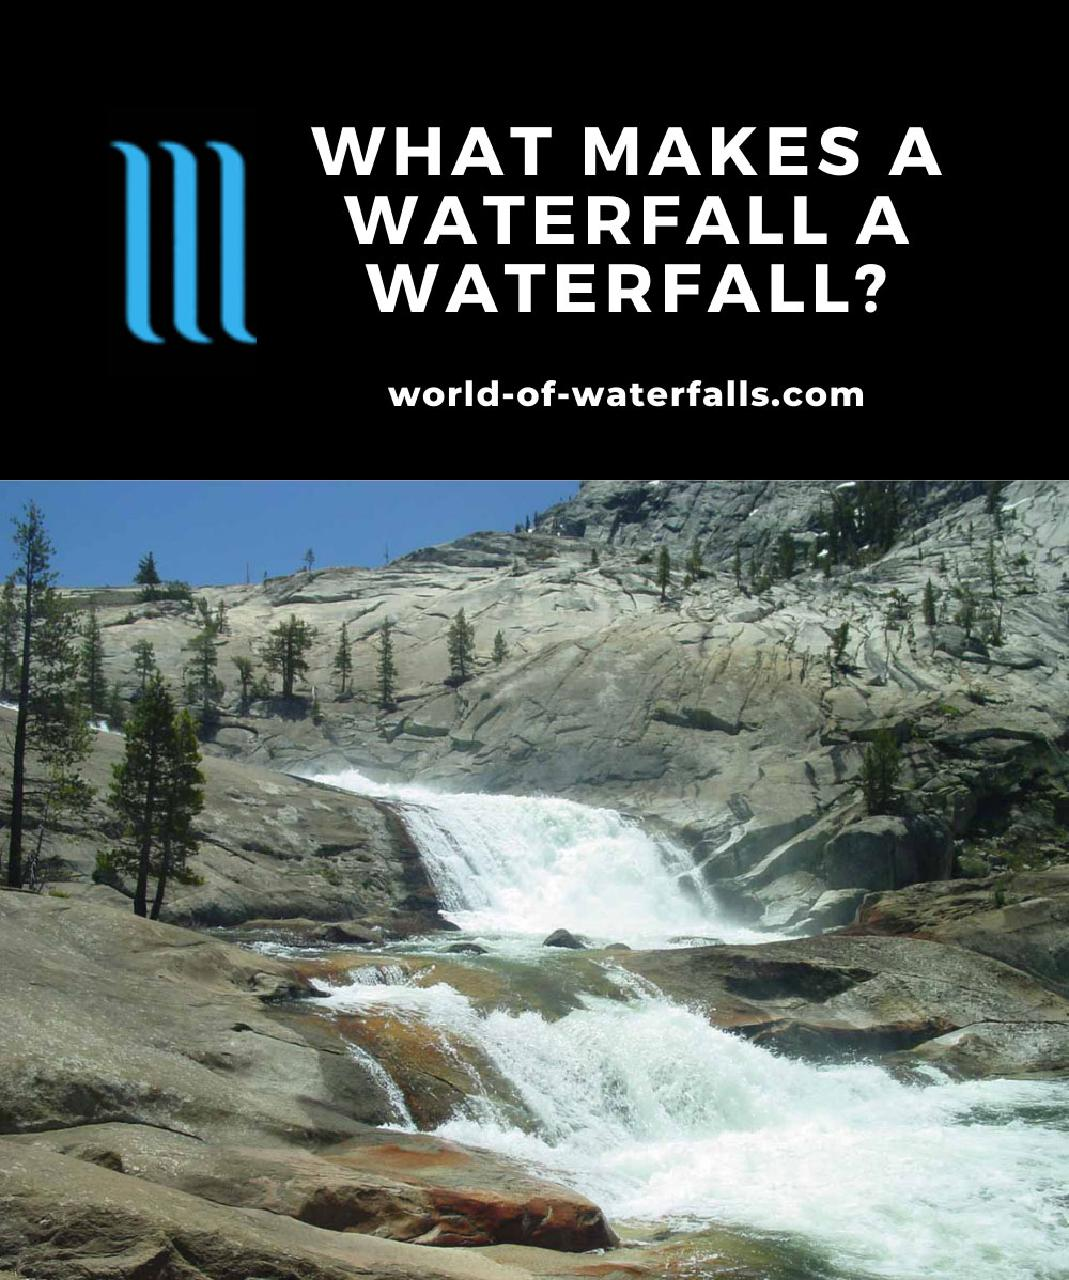 What Makes A Waterfall A Waterfall?